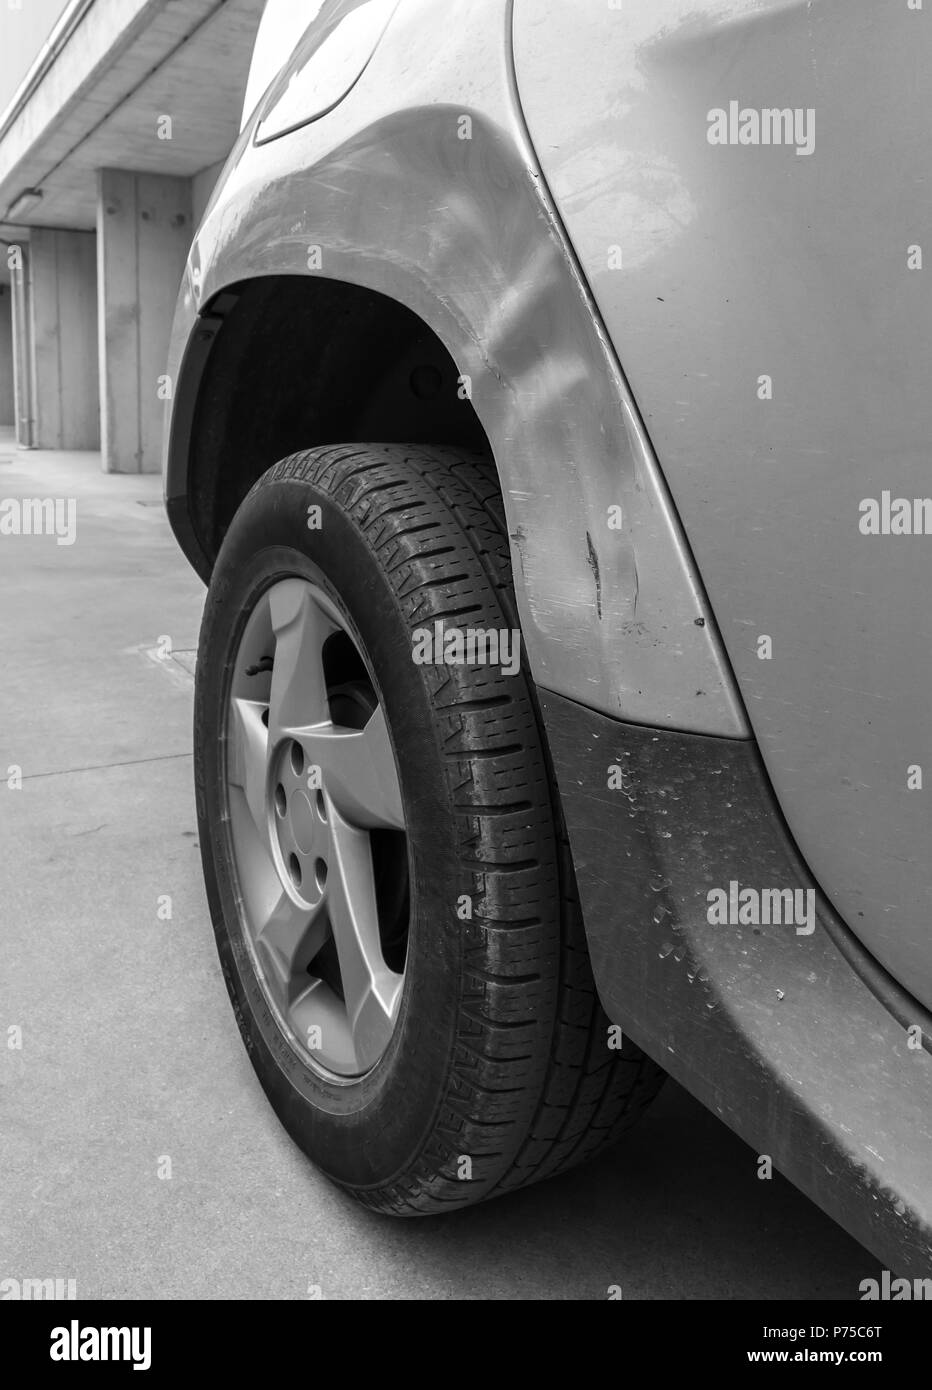 Dents on the car caused by the accident. Close-up. Stock Photo